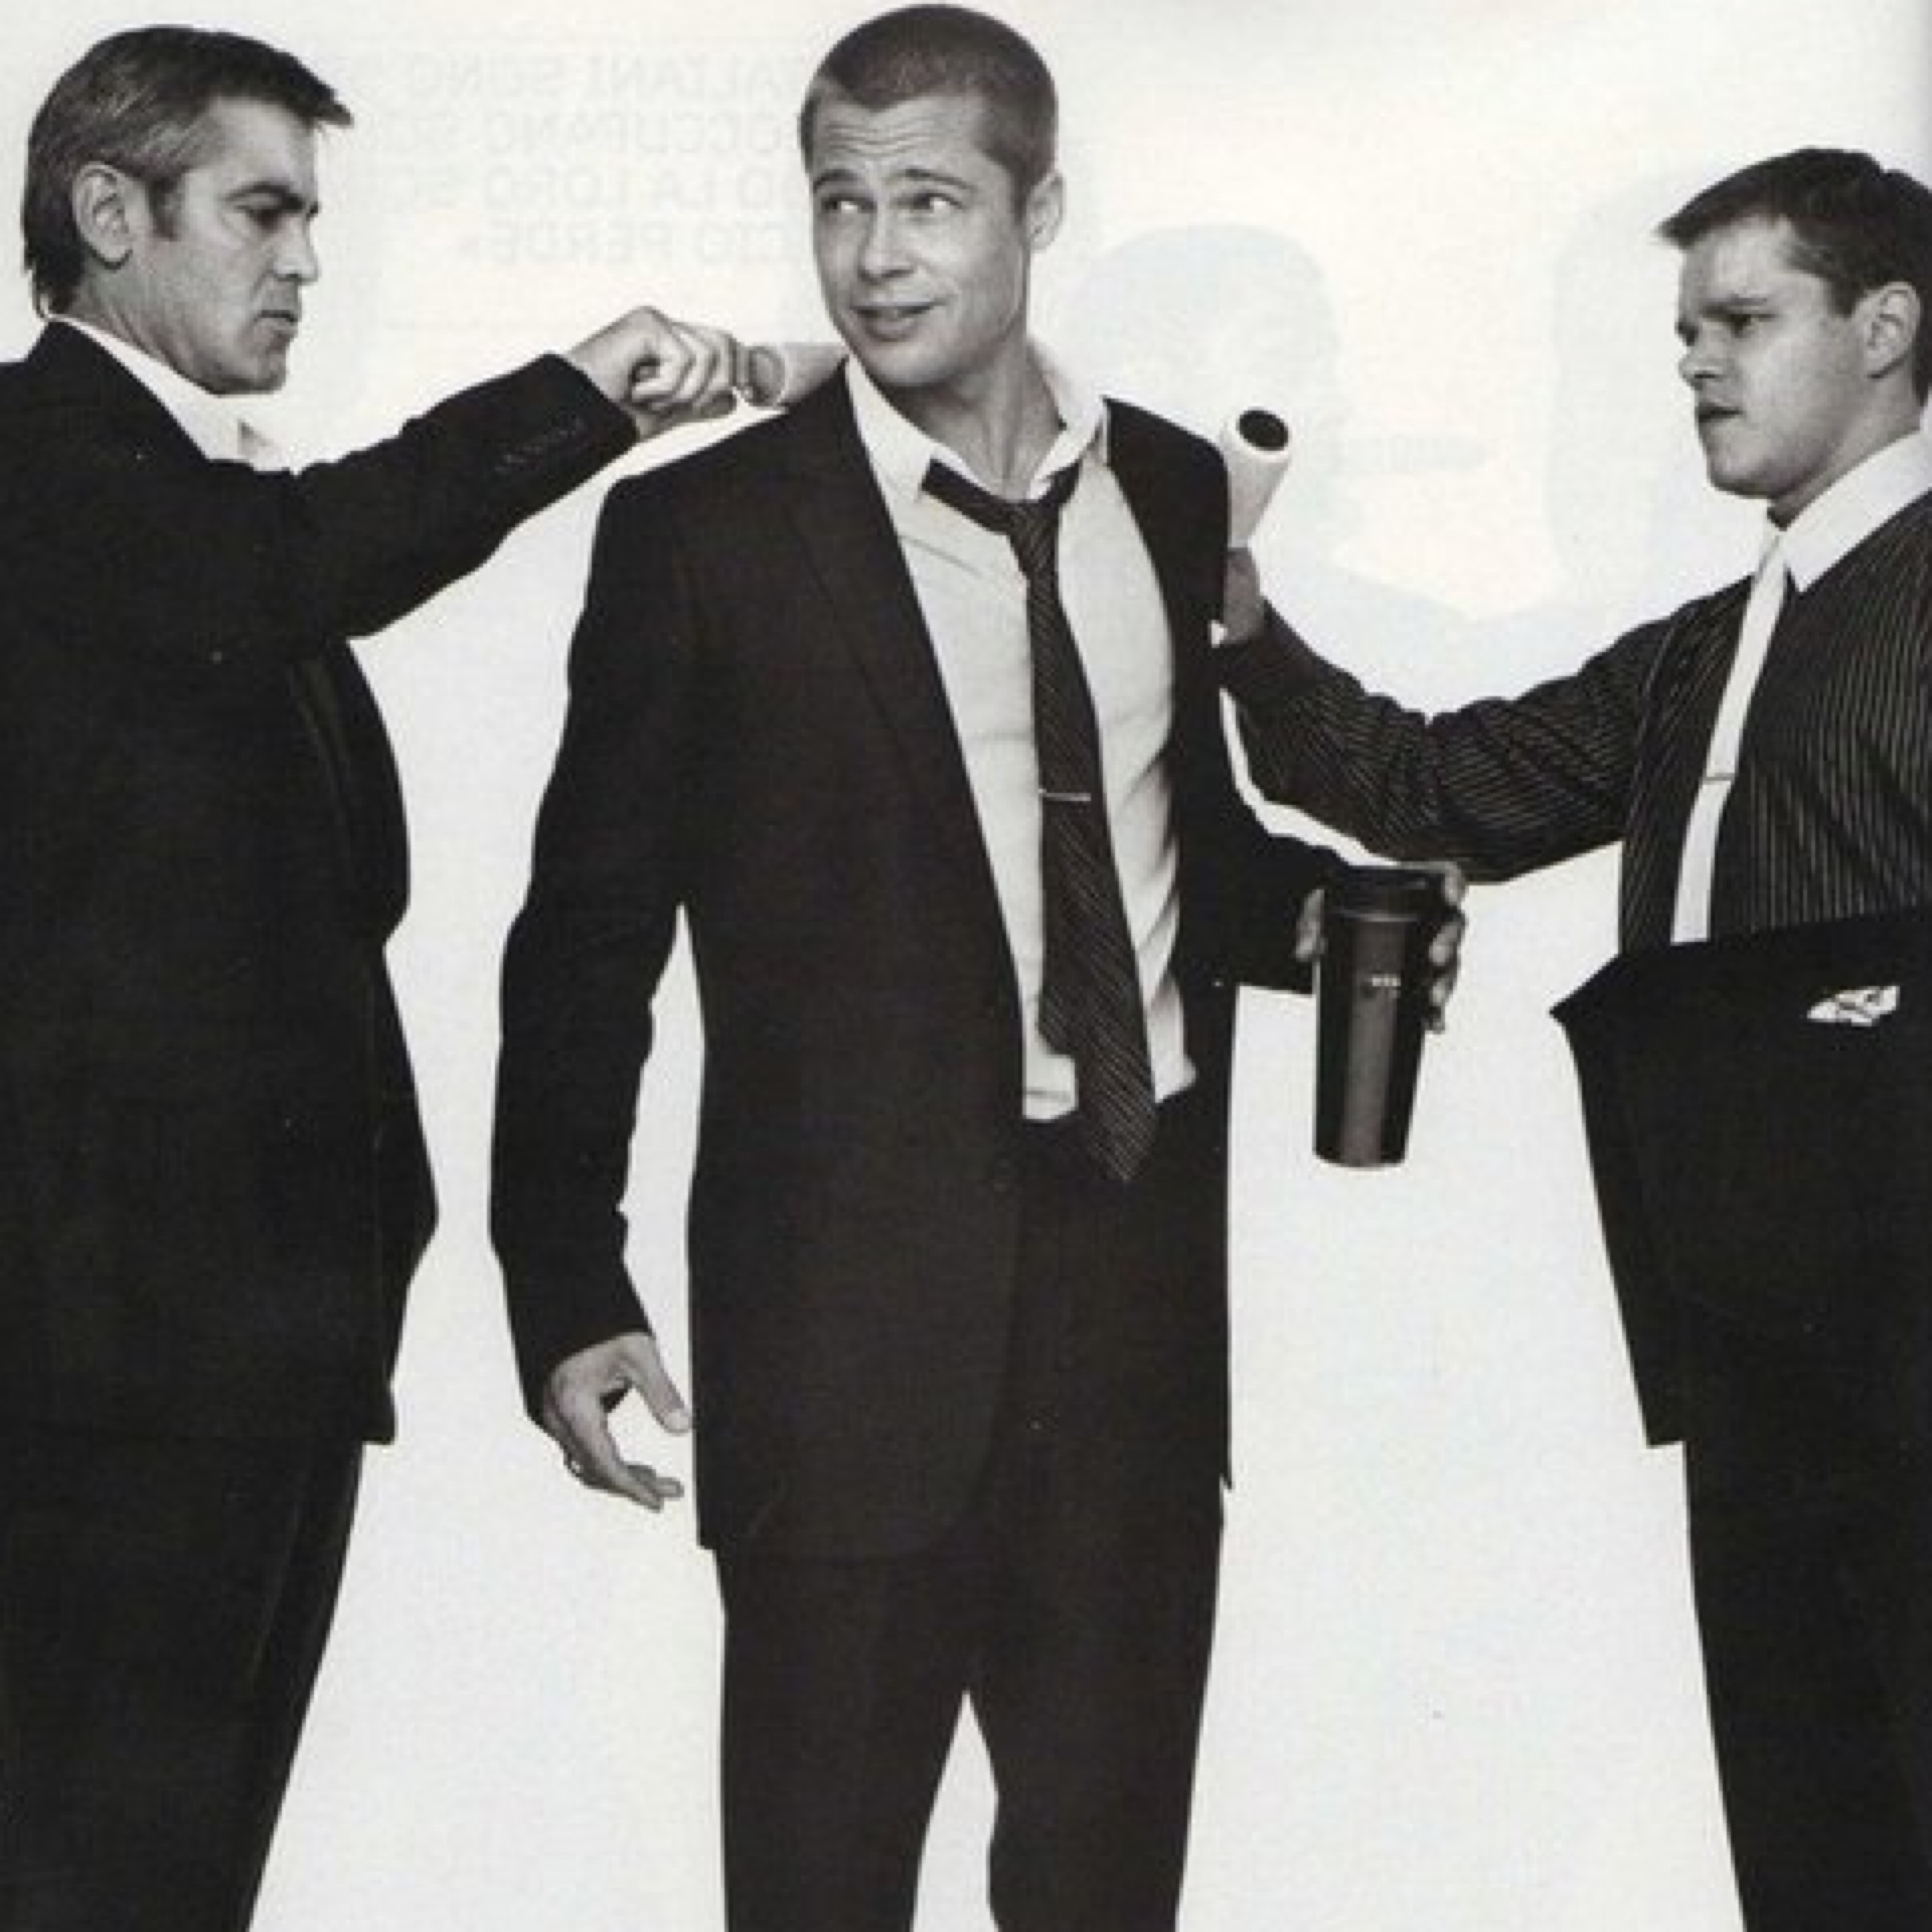 #1 (149 likes) - George Clooney, Brad Pitt and Matt Damon in Oceans Eleven